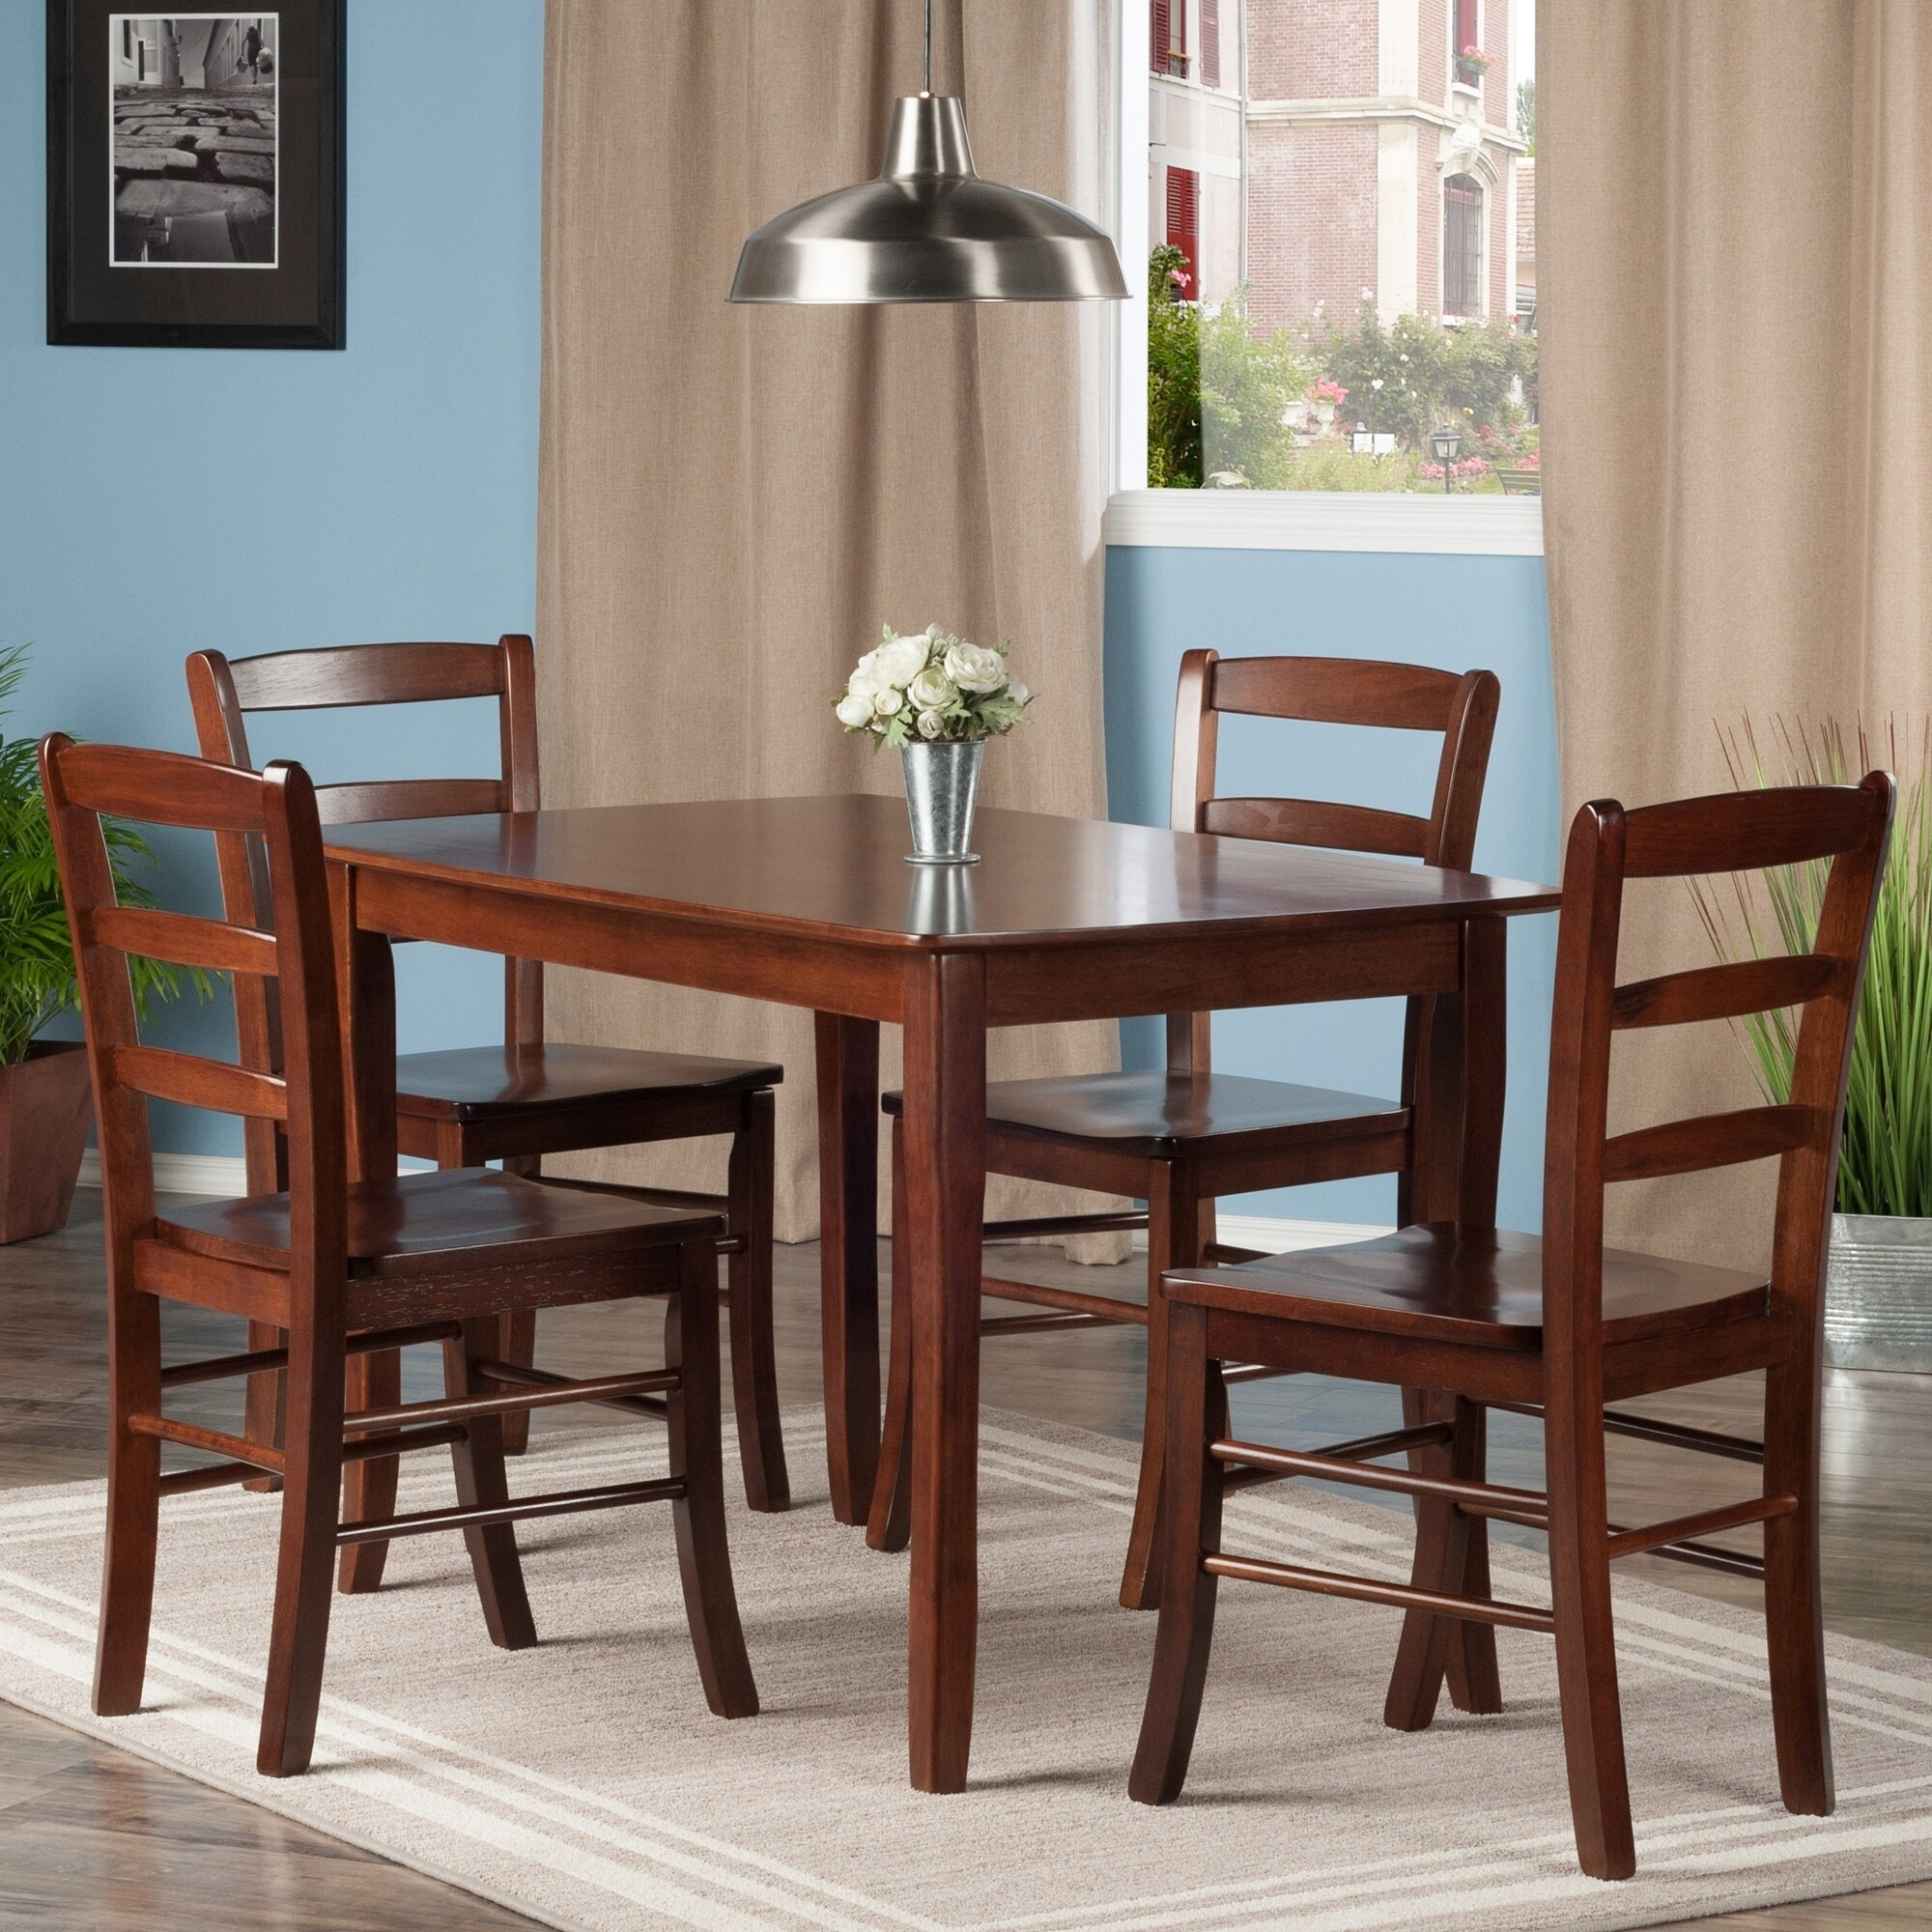 ae2825cdeada4 Shop Inglewood 5-PC Set Dining Table w/ 4 Ladderback Chairs - Free Shipping  Today - Overstock - 20735406